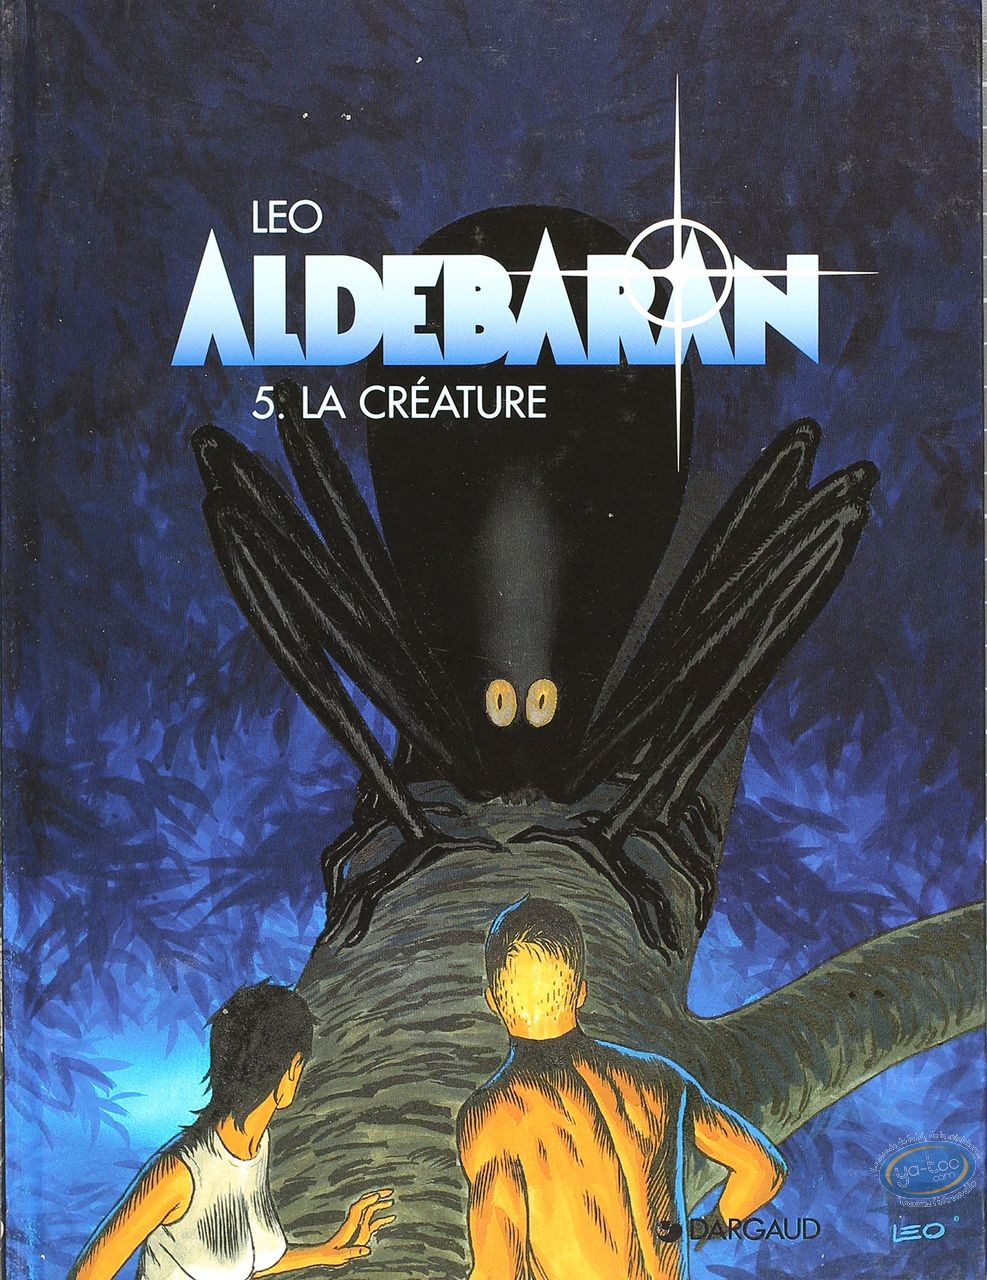 Listed European Comic Books, Aldebaran : La Creature